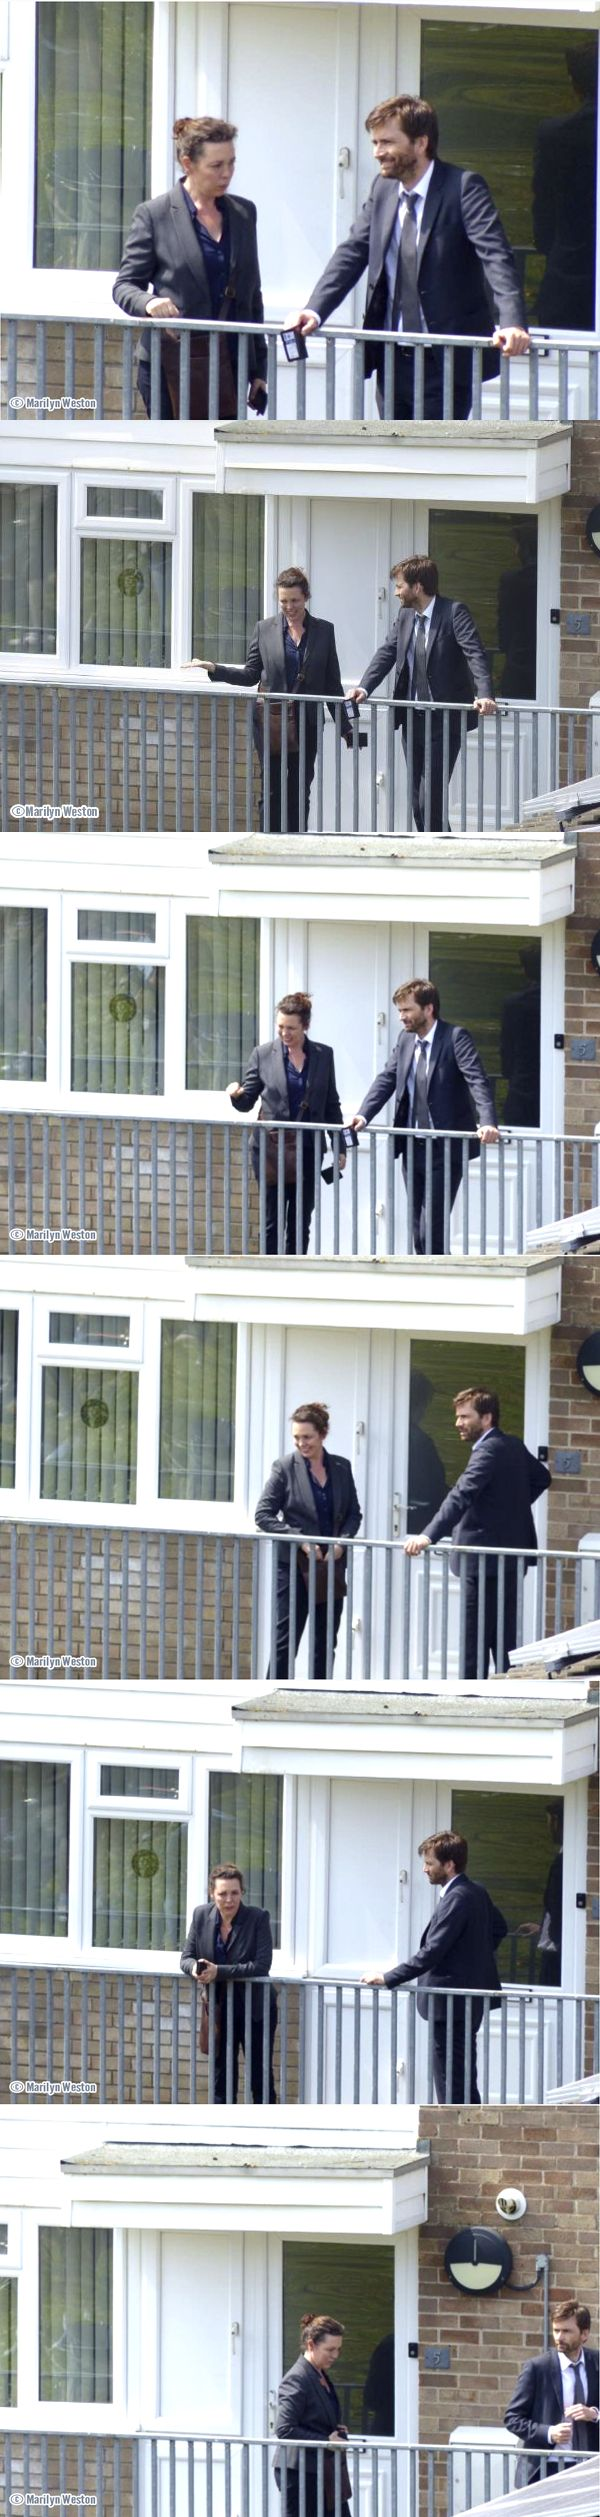 #Broadchurch 3 Filming — Miller and Hardy are pictured by a local resident filming around Redcliffe Bay, Portishead, Bristol on 7 June 2016. Looks like someone's been 'officially' reinstated with his ID card! :) Photos: ©Marilyn Weston